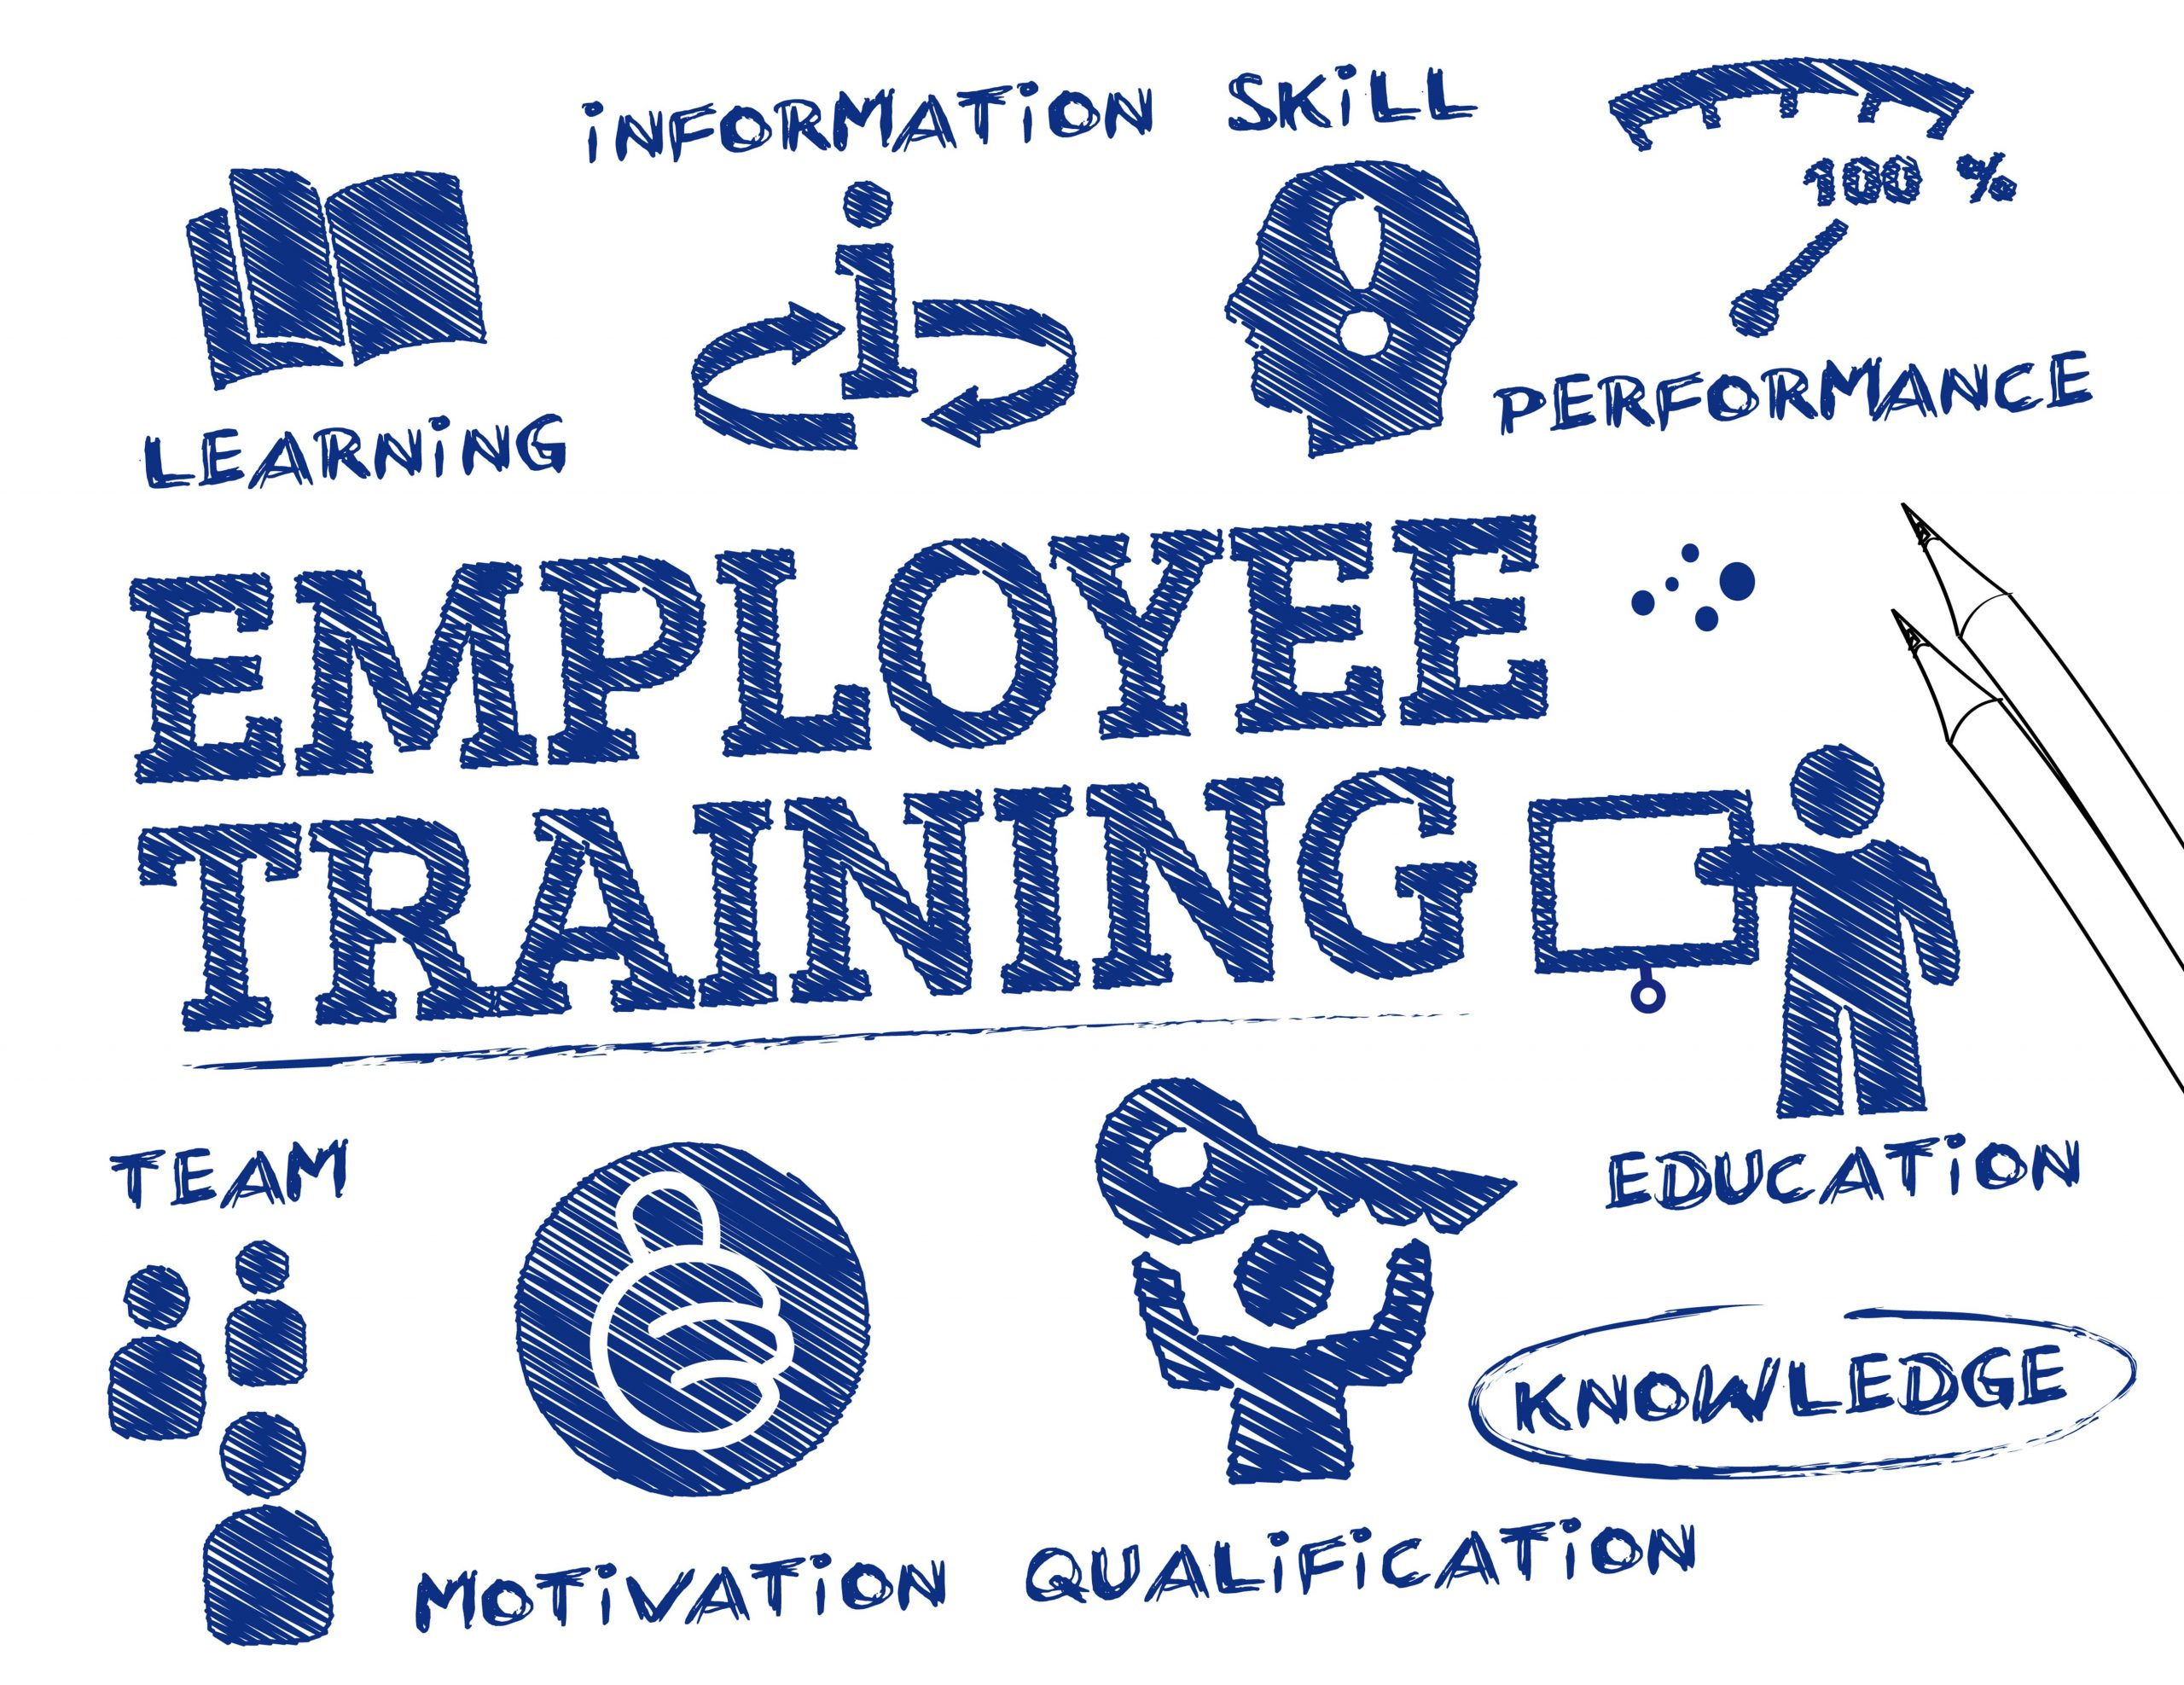 employee engagement - training word image with keywords and icons